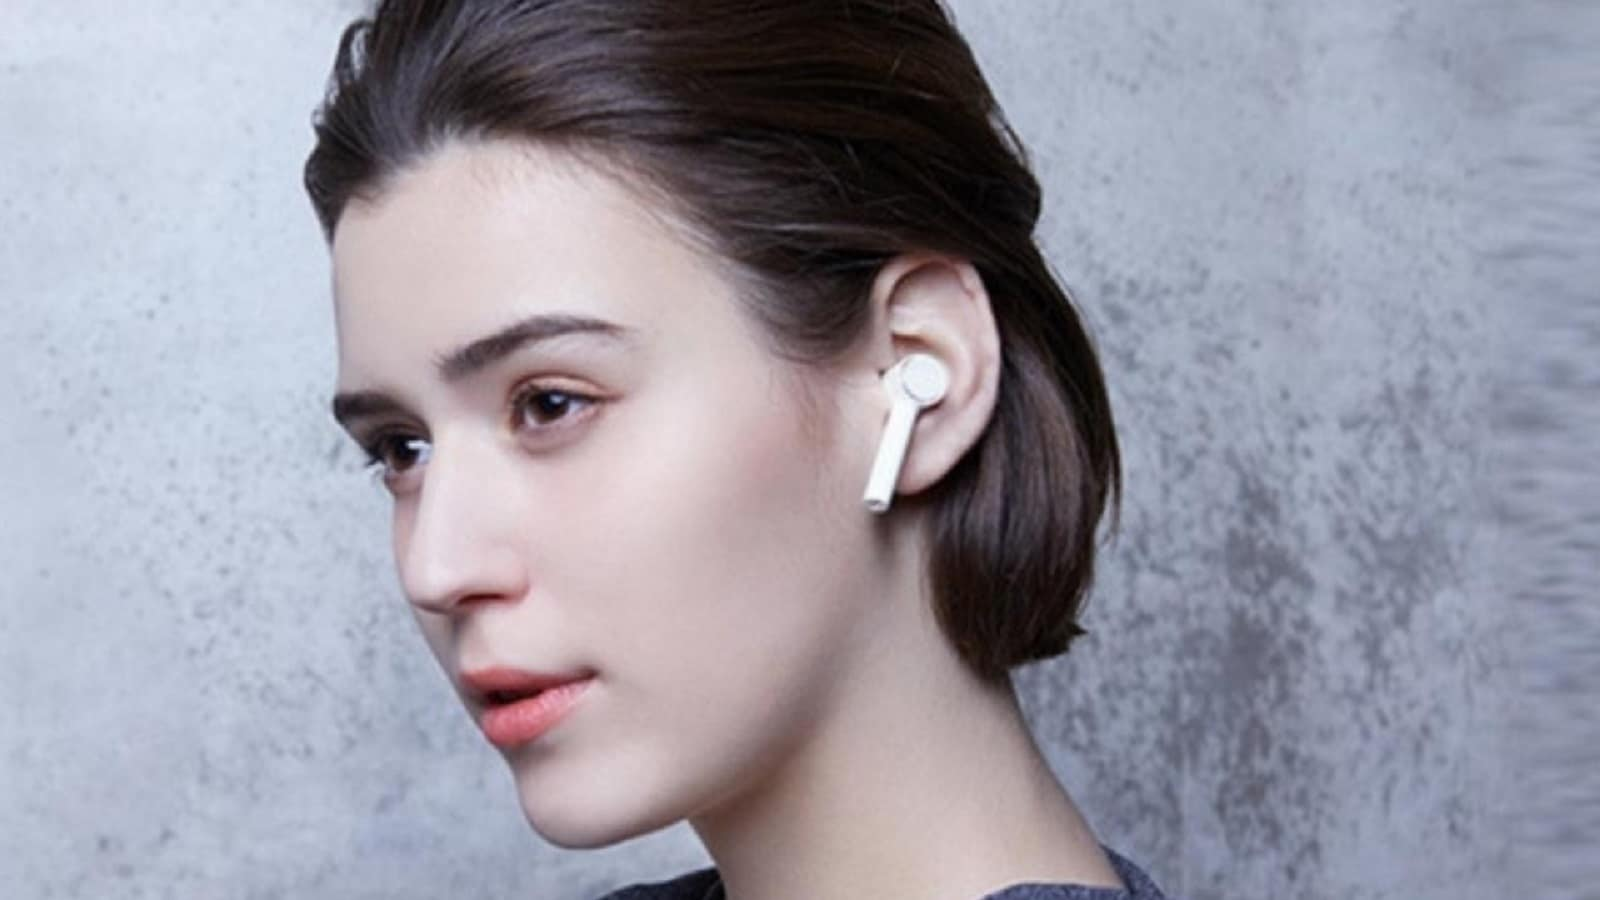 xiaomi air dots earbuds being worn in-ear